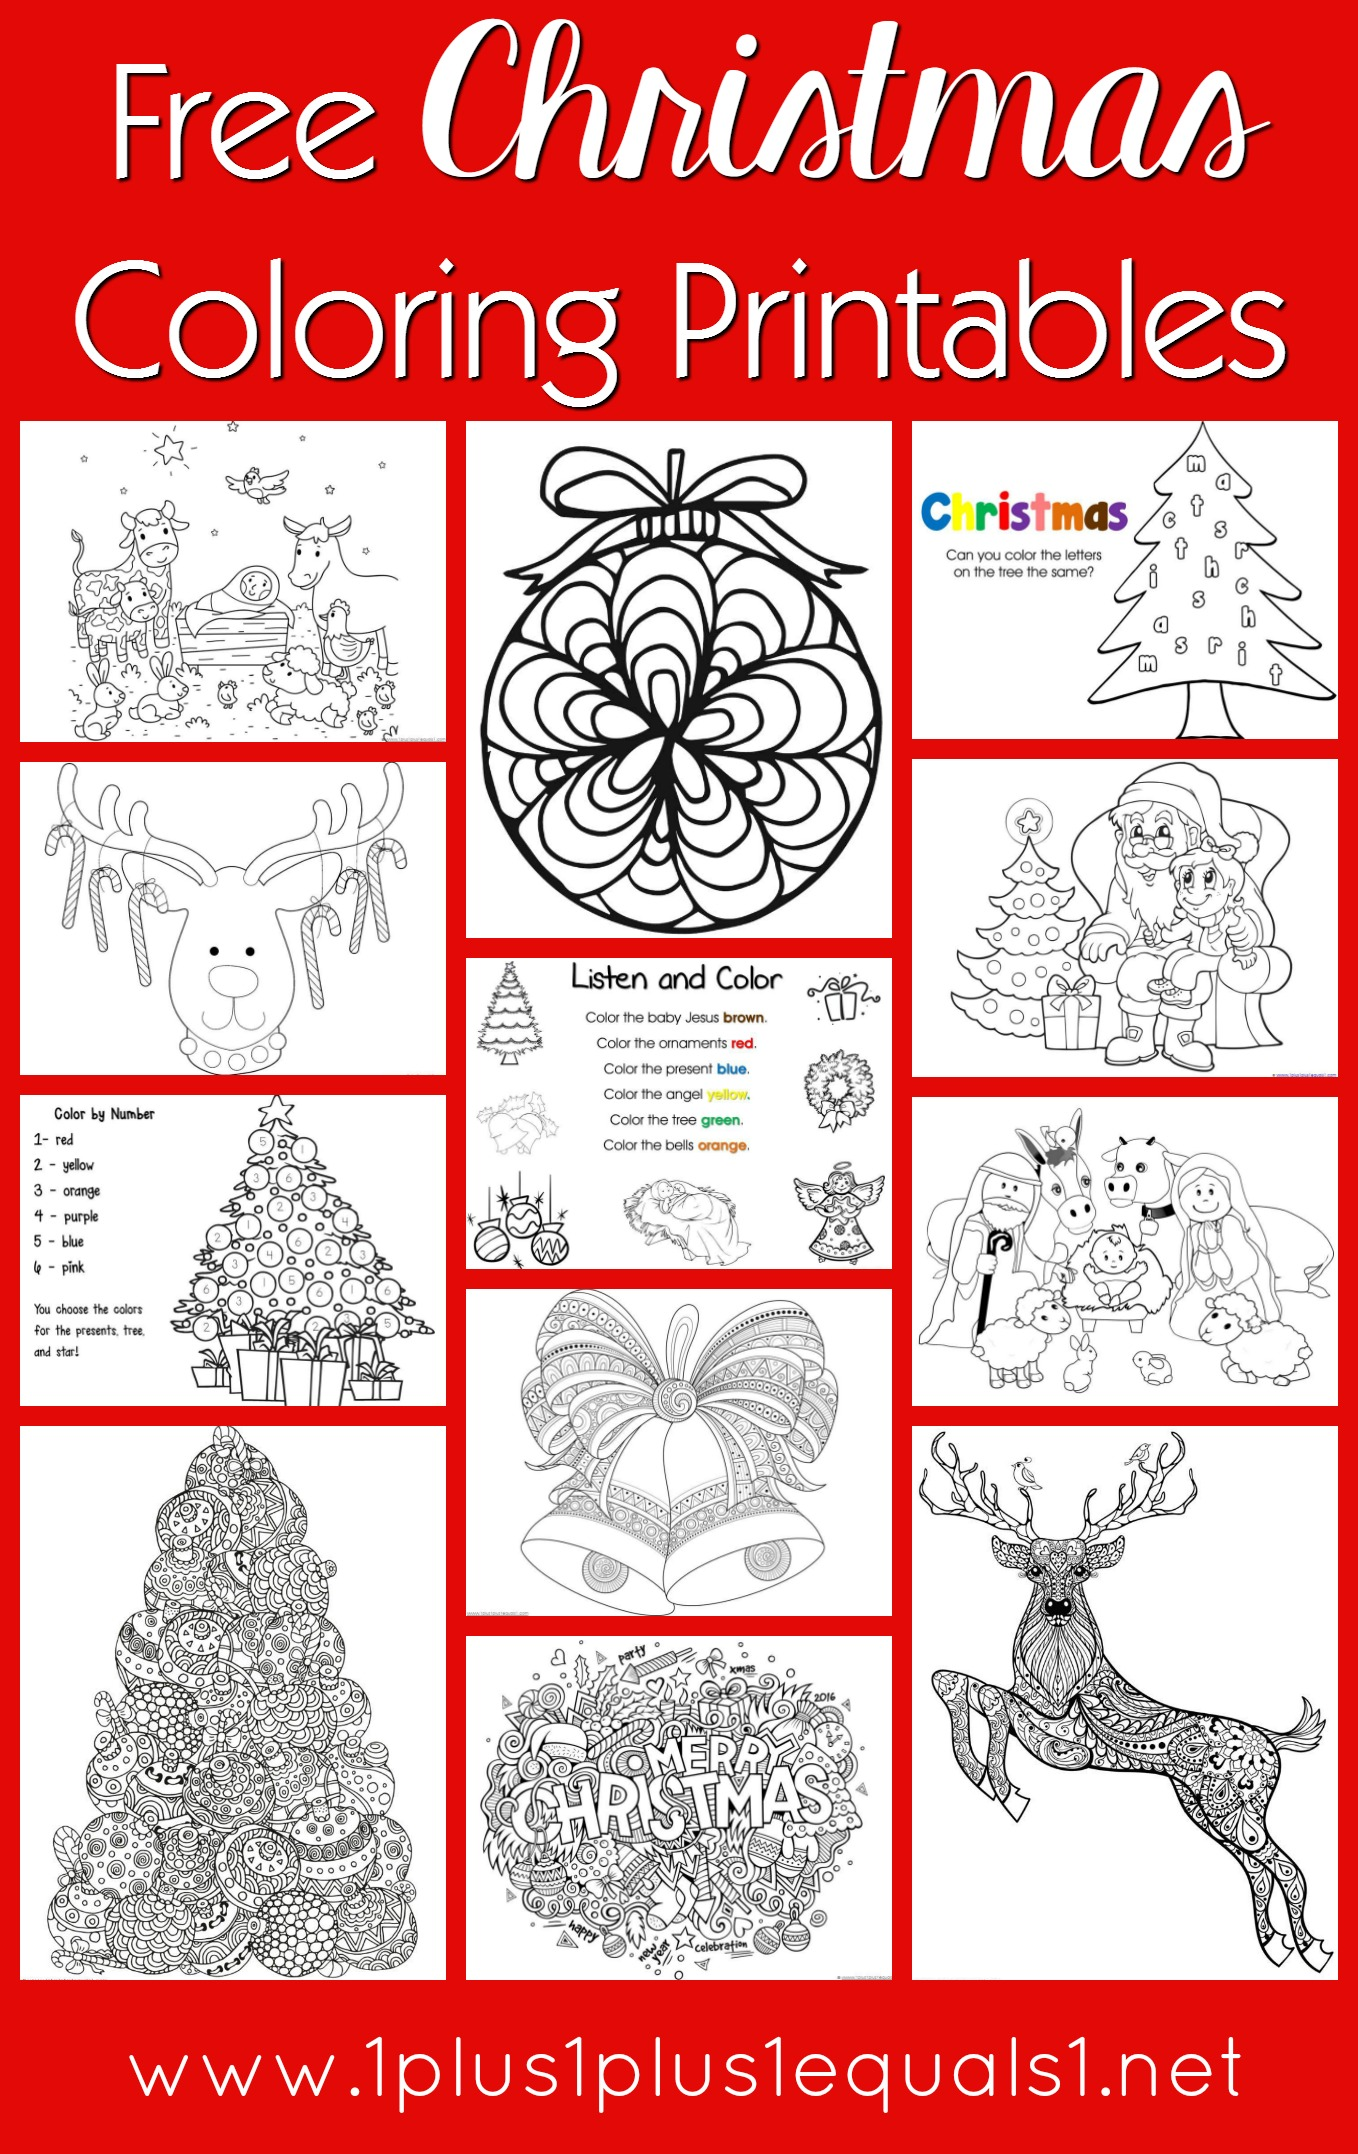 Hurry Double Decker Bus Coloring Page Ultra Pages - Bus Travelling ... | 2154x1358